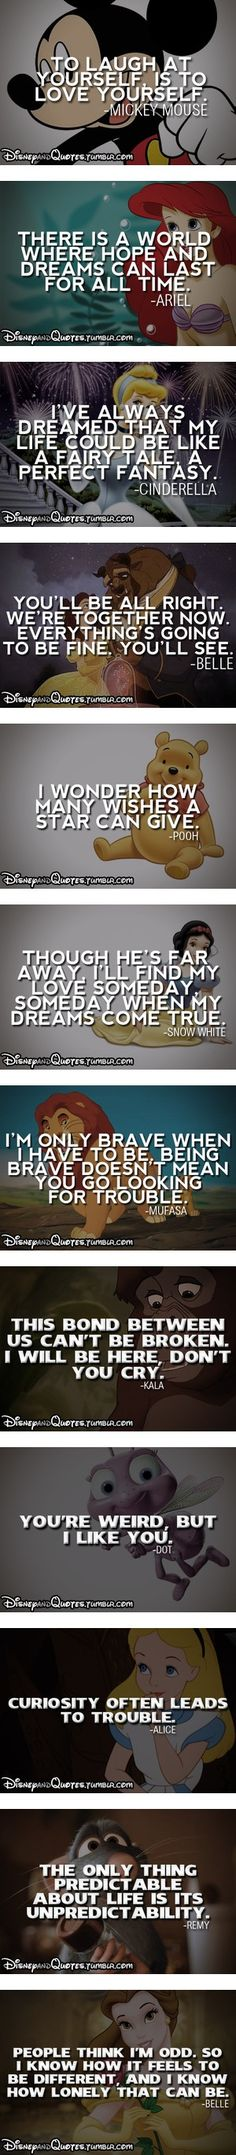 And this is why I love Disney....especially Alice in wonderland :)